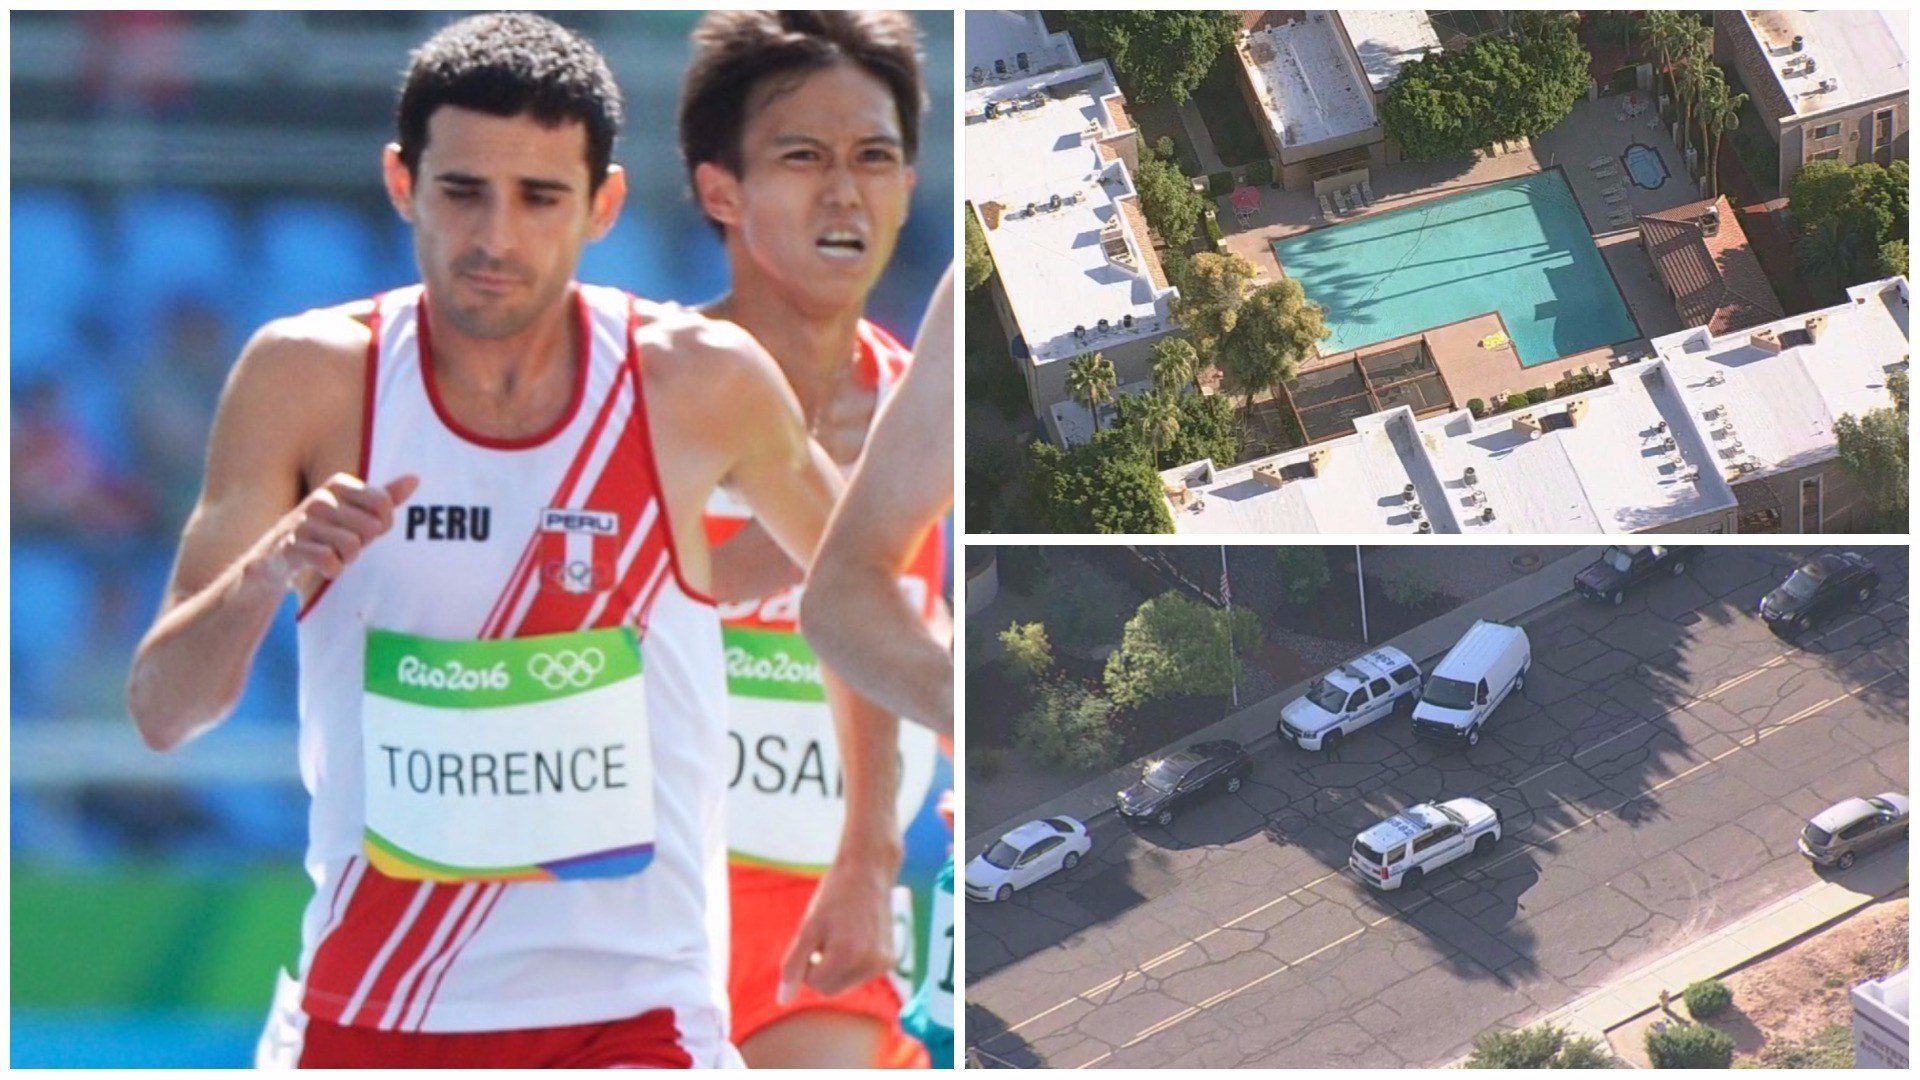 Peruvian Olympic runner Torrence found dead